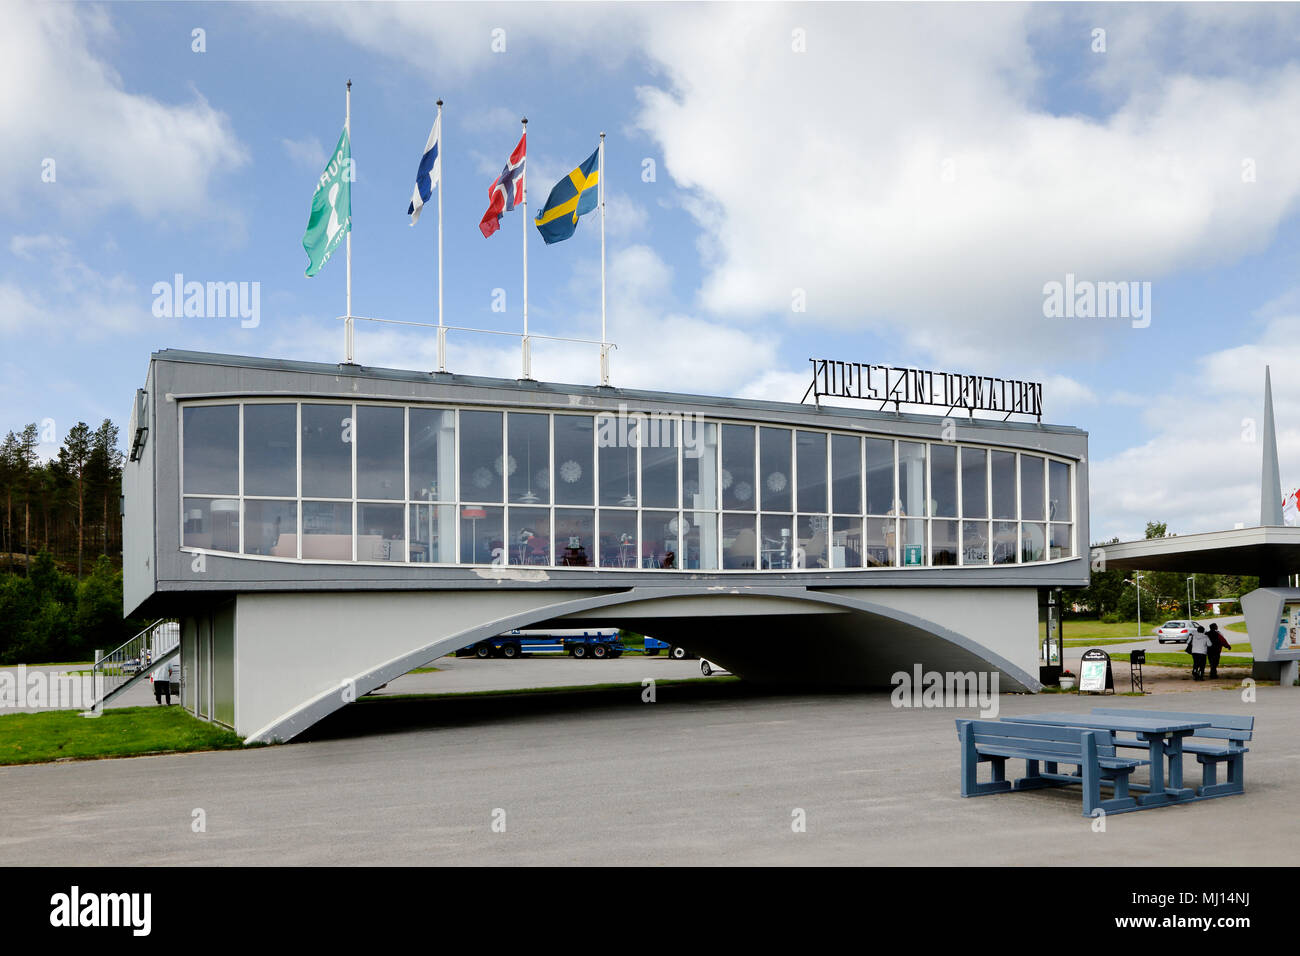 Javre, Sweden - July 14, 2015: Javre tourist station was designed by architect Gunnar Lehtipalo in modernist style, was built at road E4 to serve a ne Stock Photo